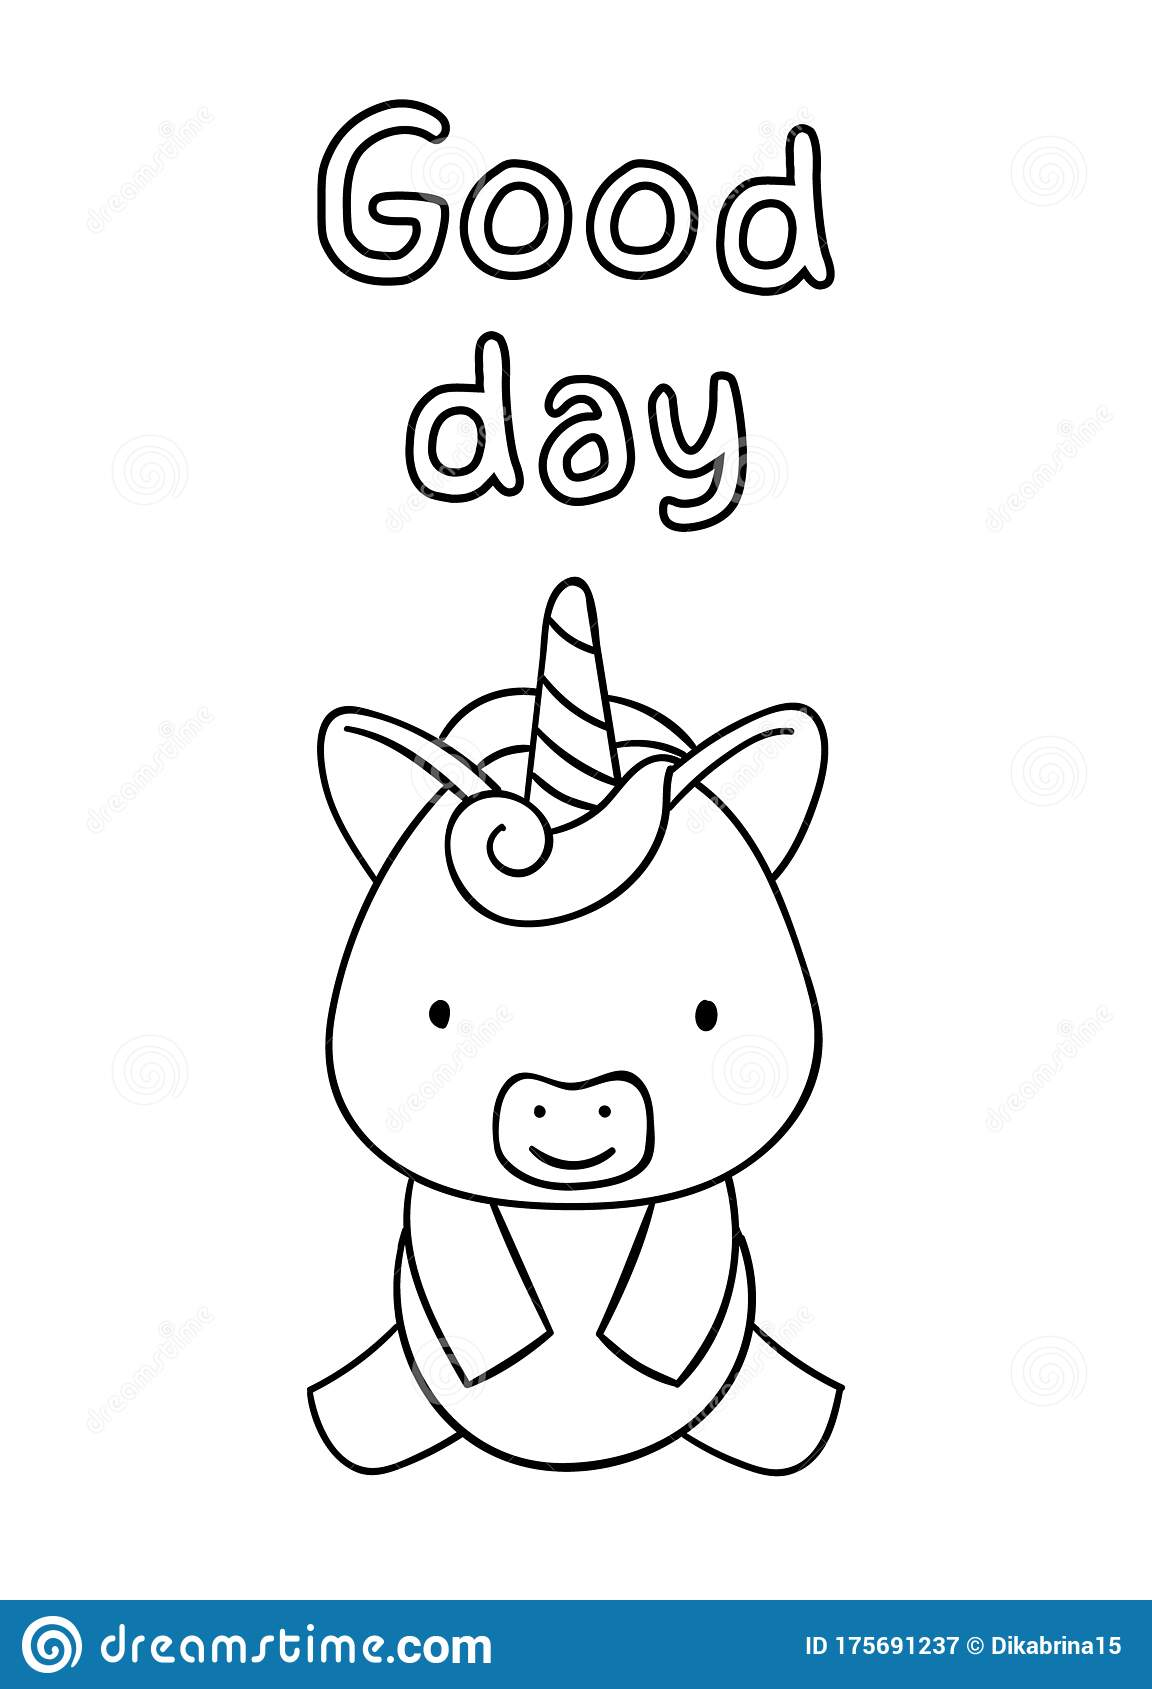 Coloring Pages, Black And White Cute Hand Drawn Unicorn ...